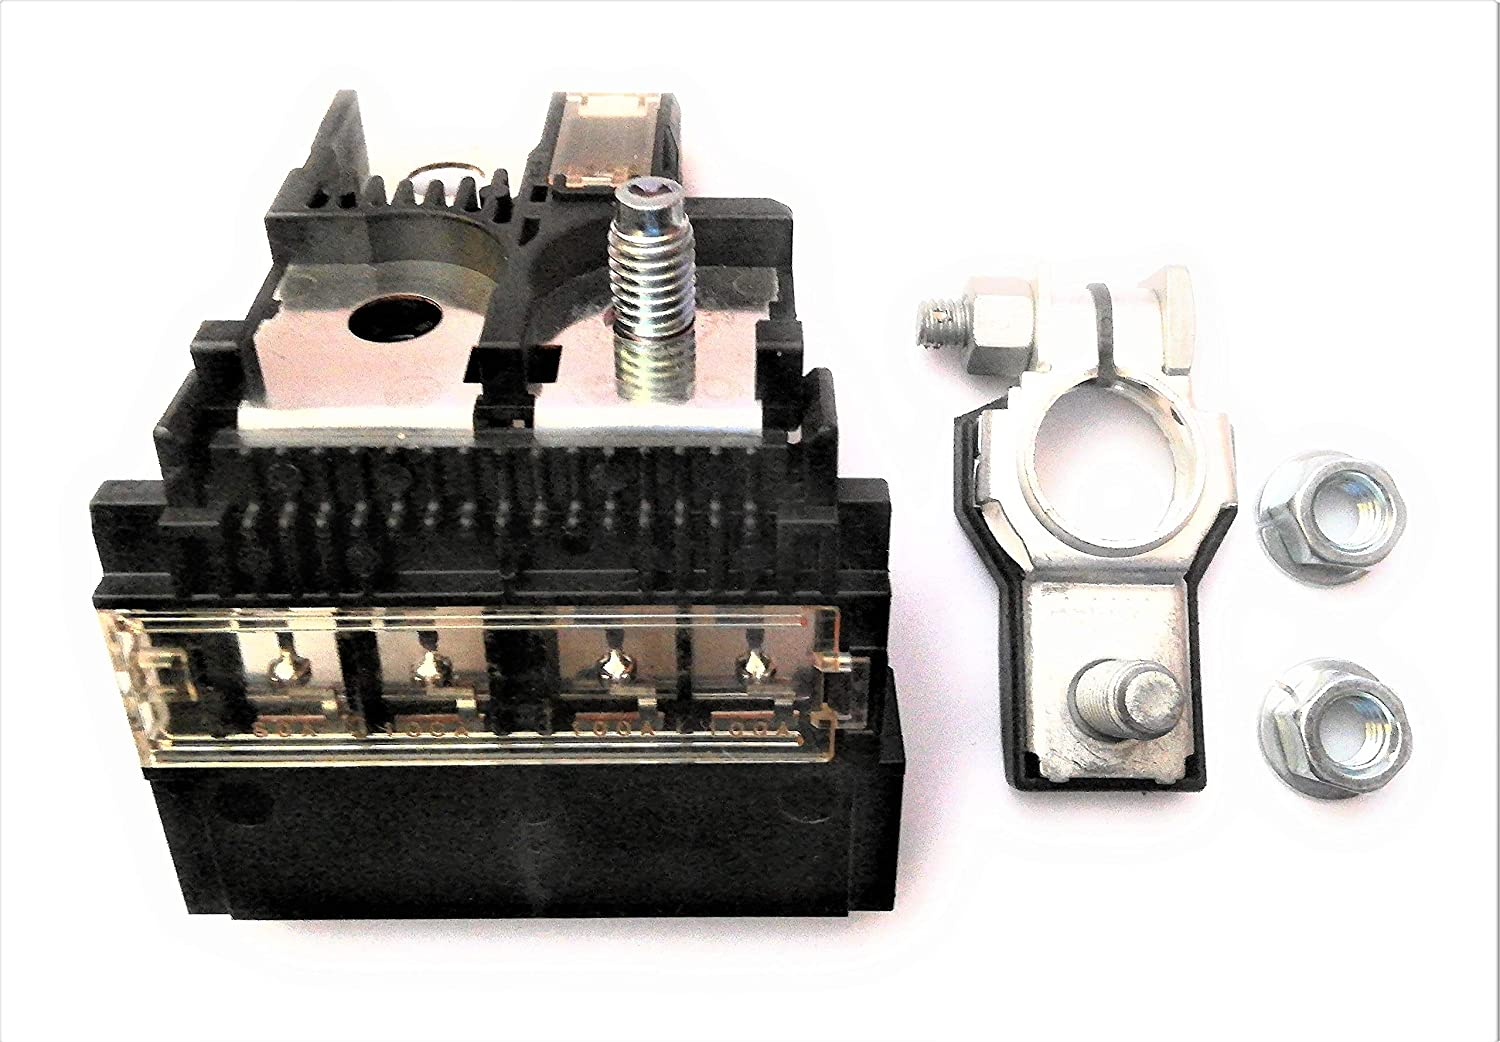 Nissan Battery Fuse Box - 1977 Oldsmobile Fuse Box for Wiring Diagram  Schematics | Battery And Fuse Box Nissan |  | Wiring Diagram Schematics